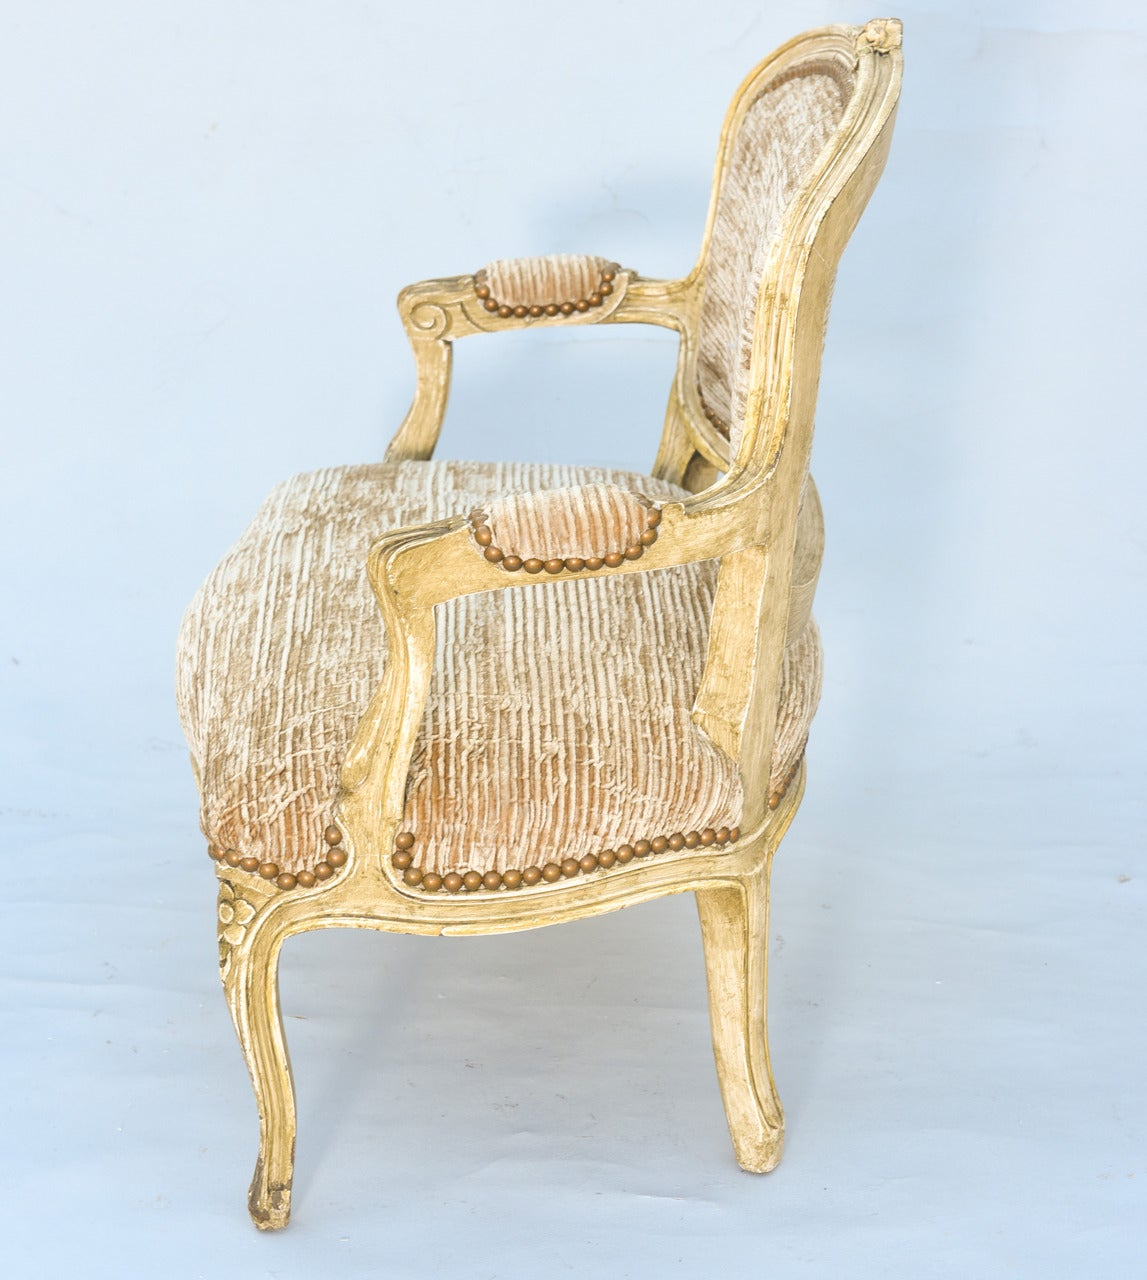 Diminutive Child Sized Louis Xv Painted Settee For Sale At 1stdibs